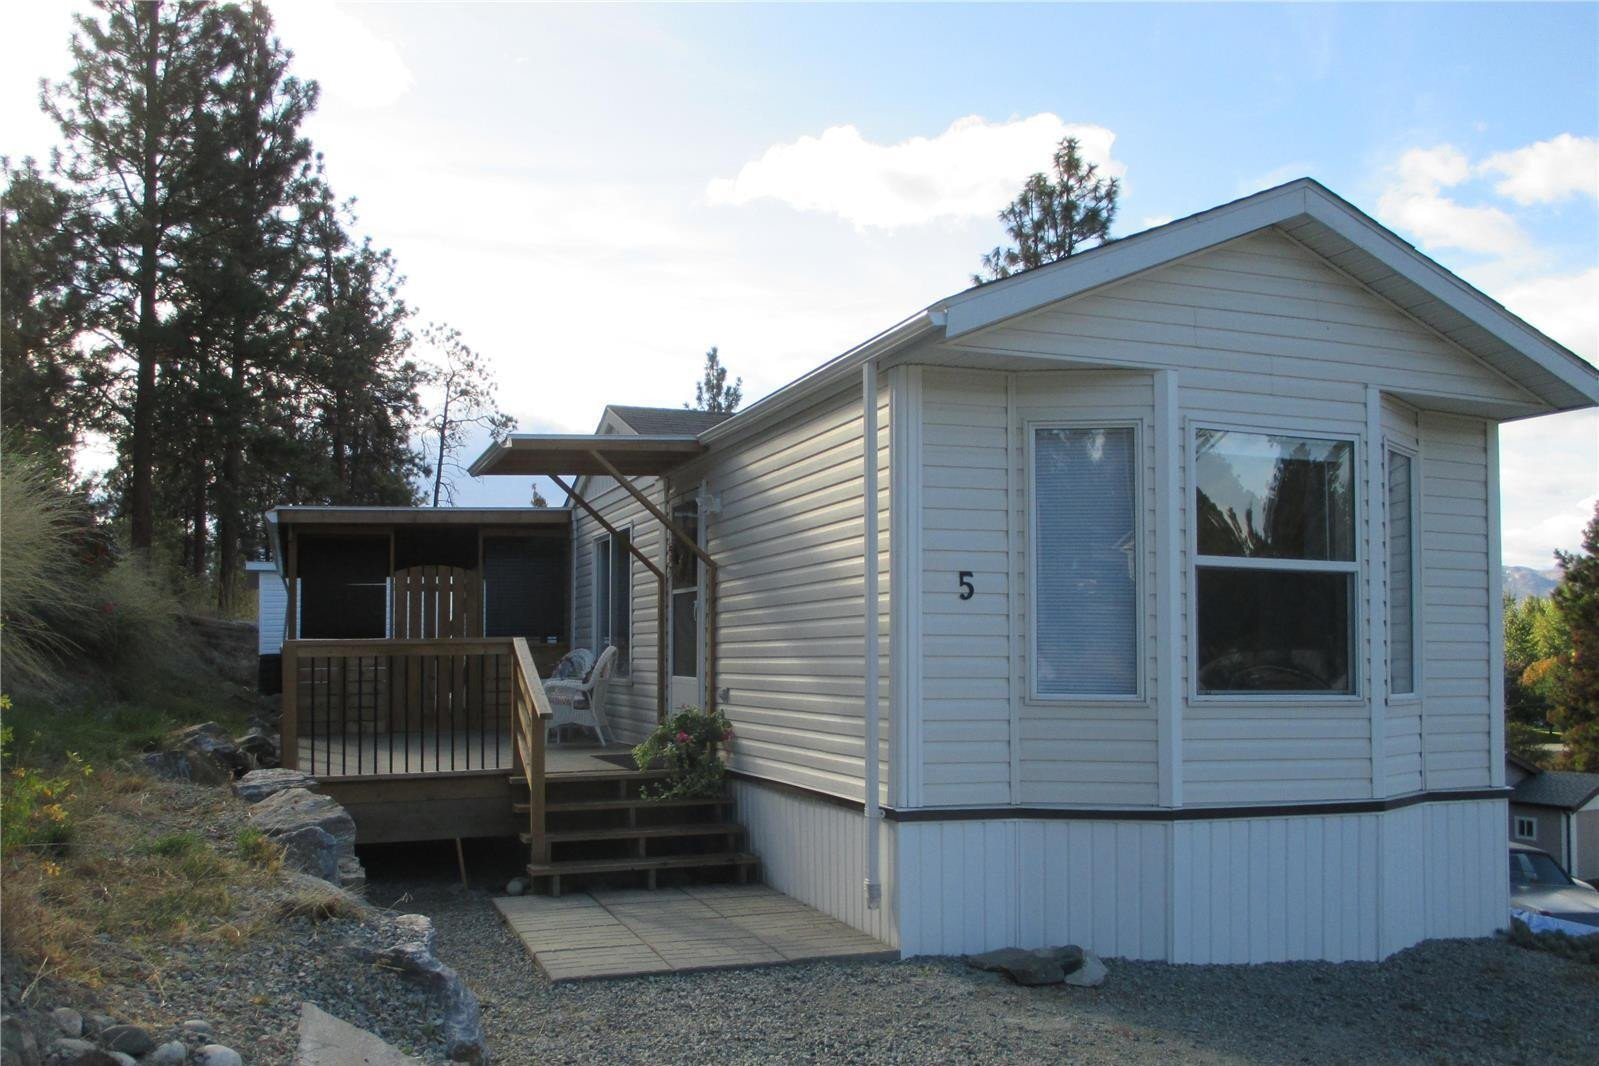 Home for sale at 1860 Boucherie Rd Unit 5 West Kelowna British Columbia - MLS: 10218025